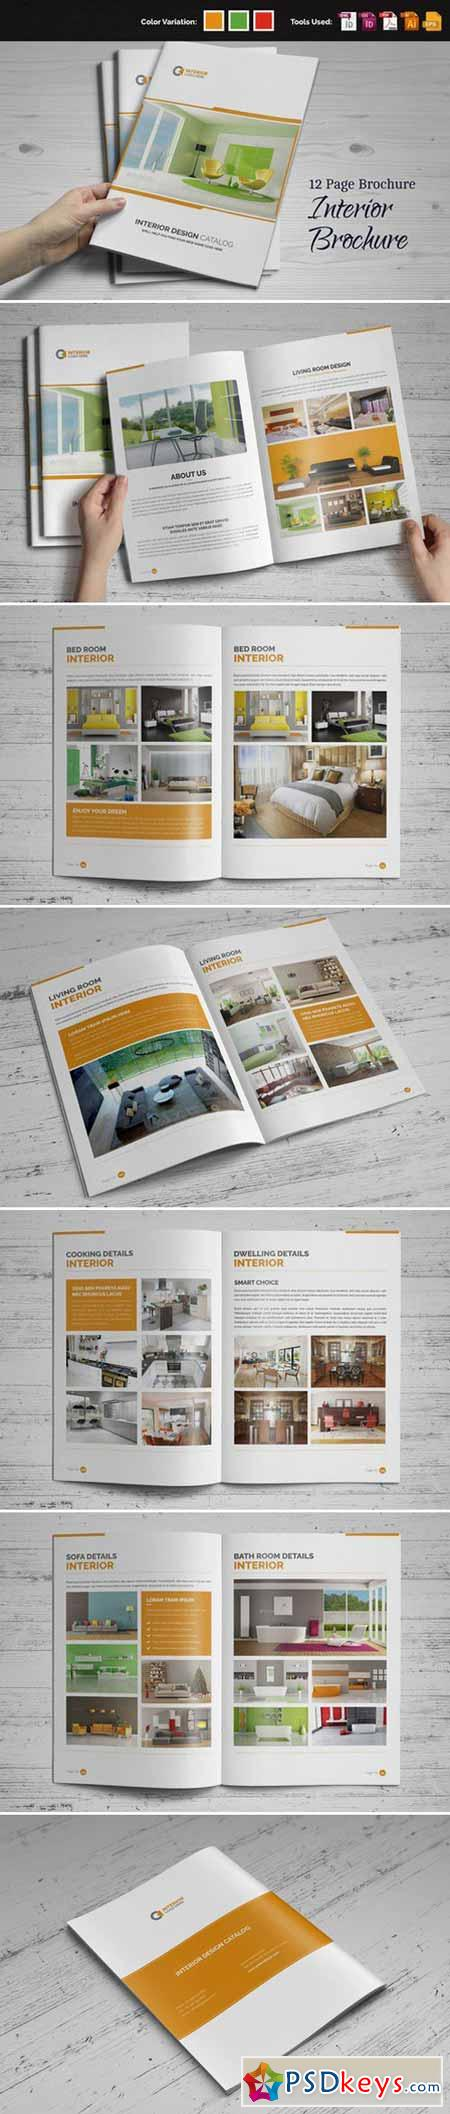 Interior Brochure InDesign v.2 459060